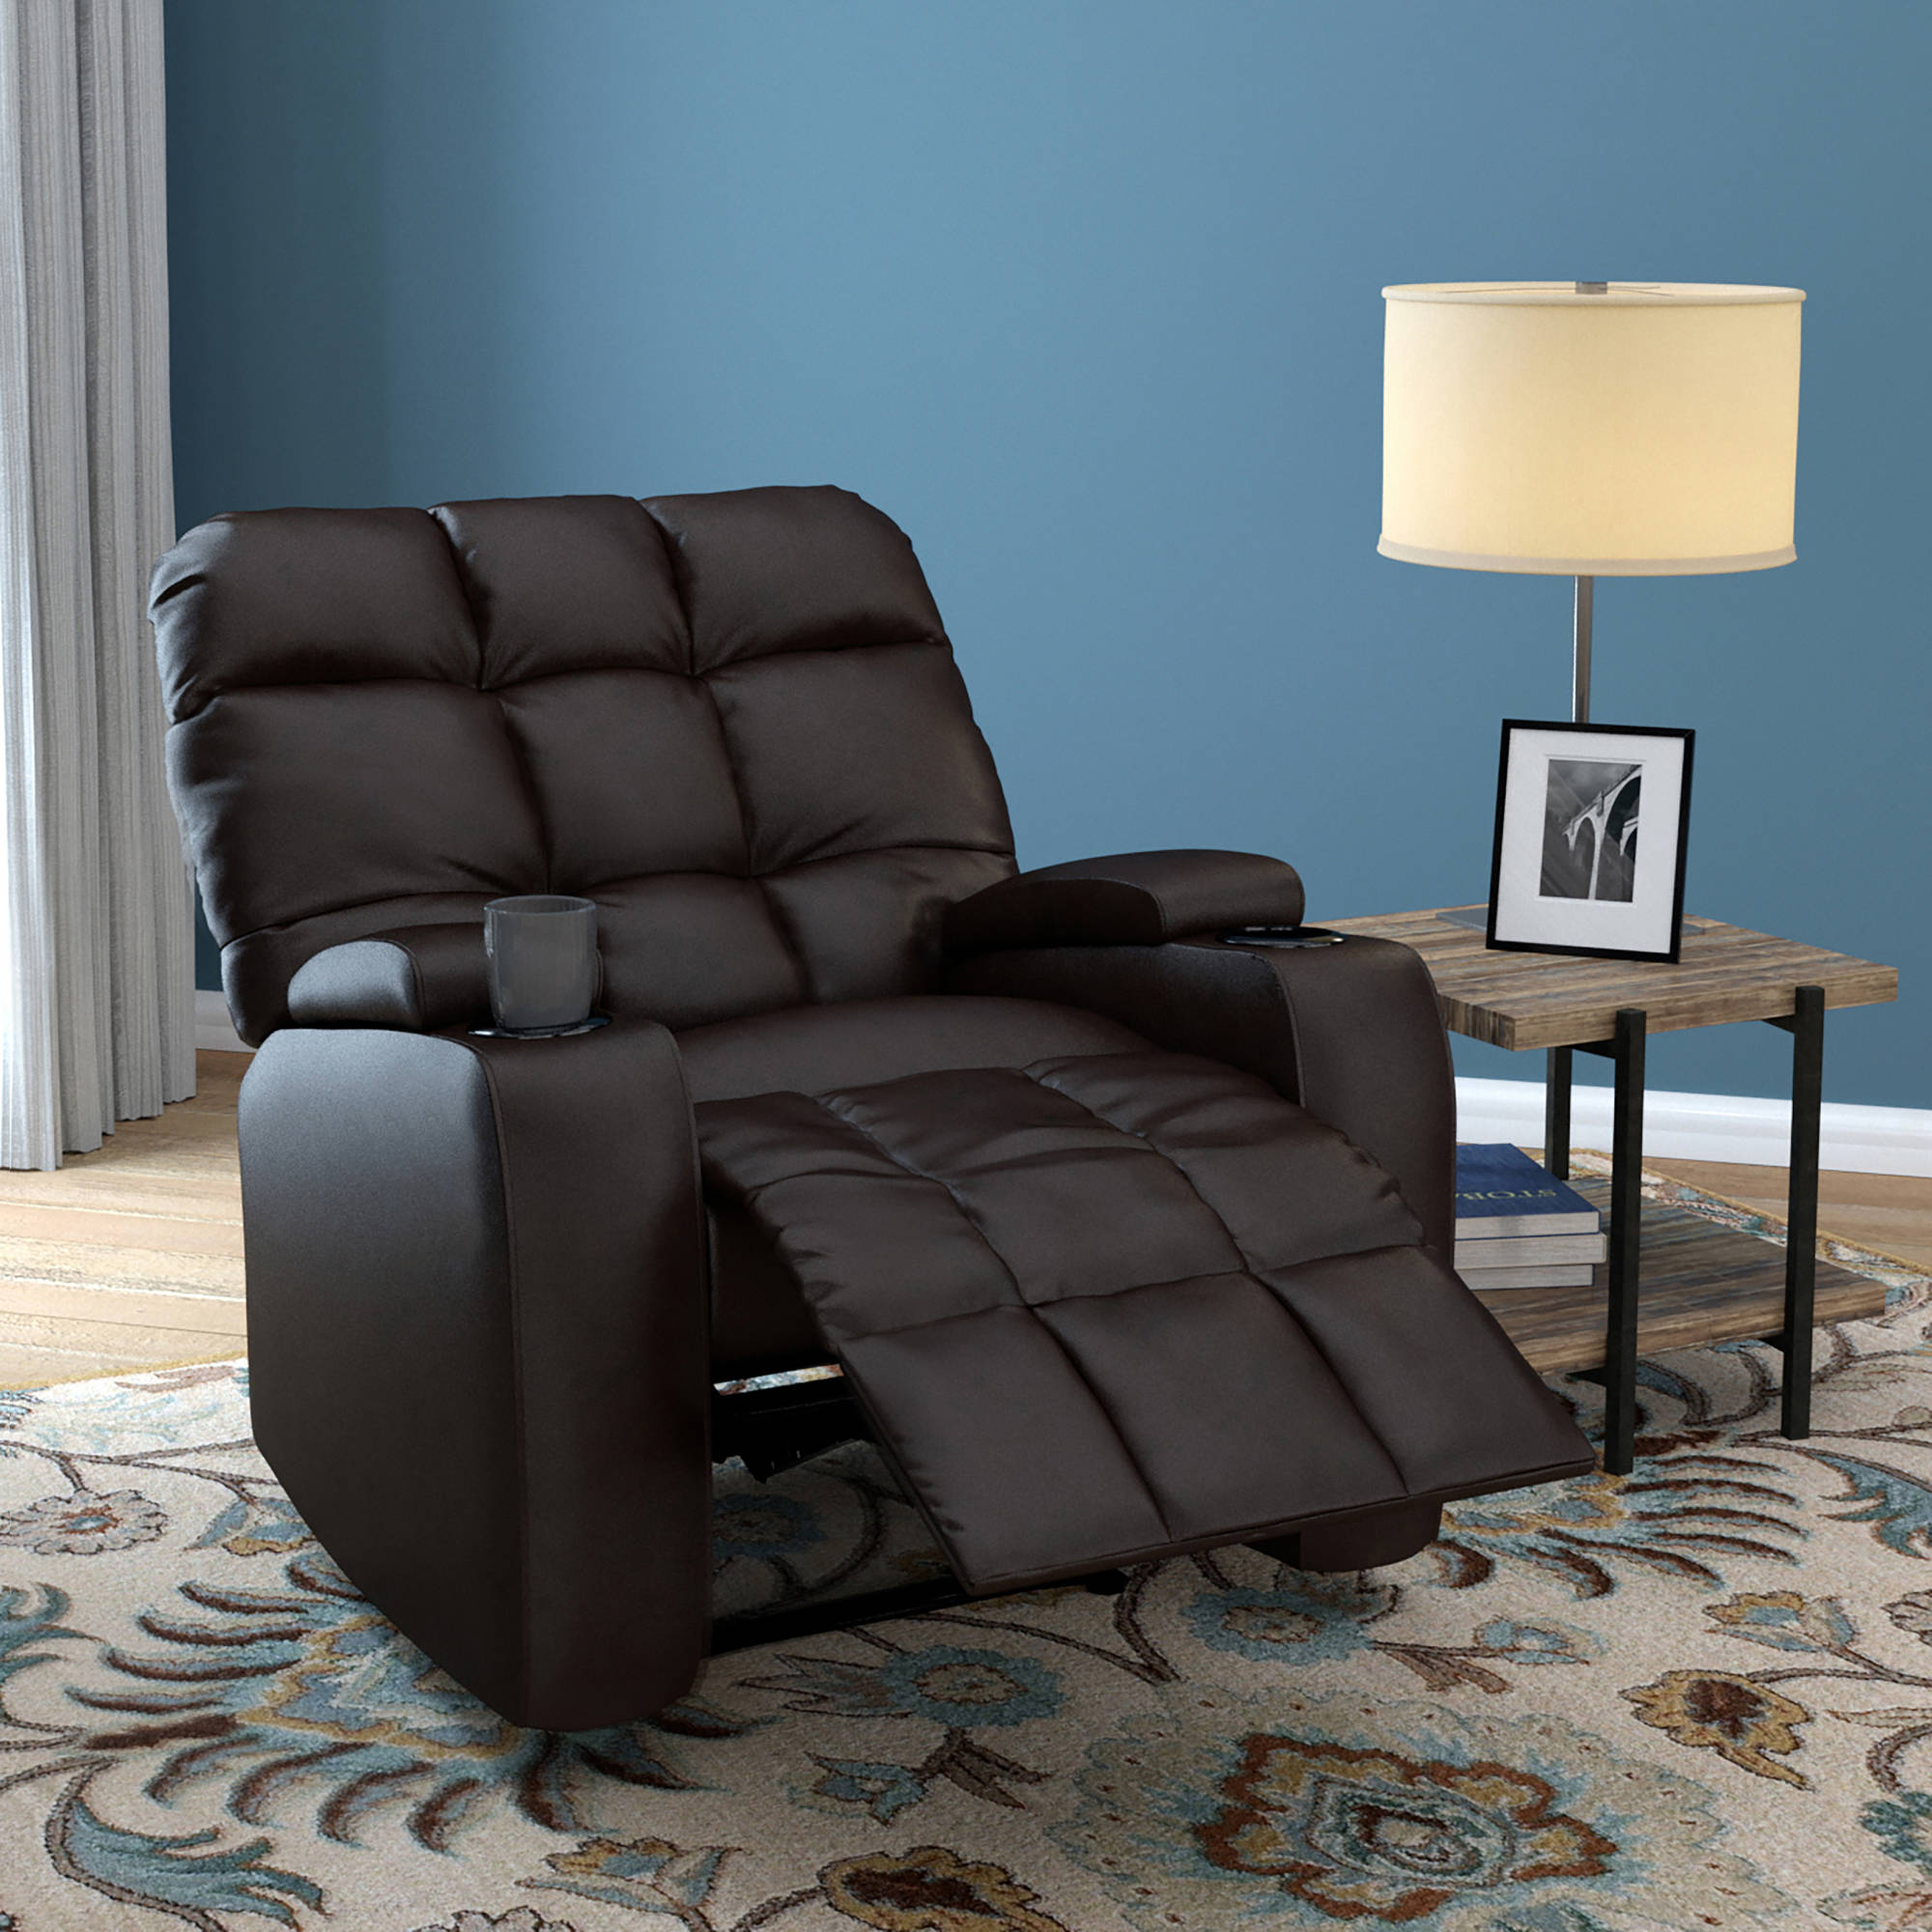 ProLounger Power Wall Hugger Storage Reclining Chair in Renu Leather, Multiple Colors